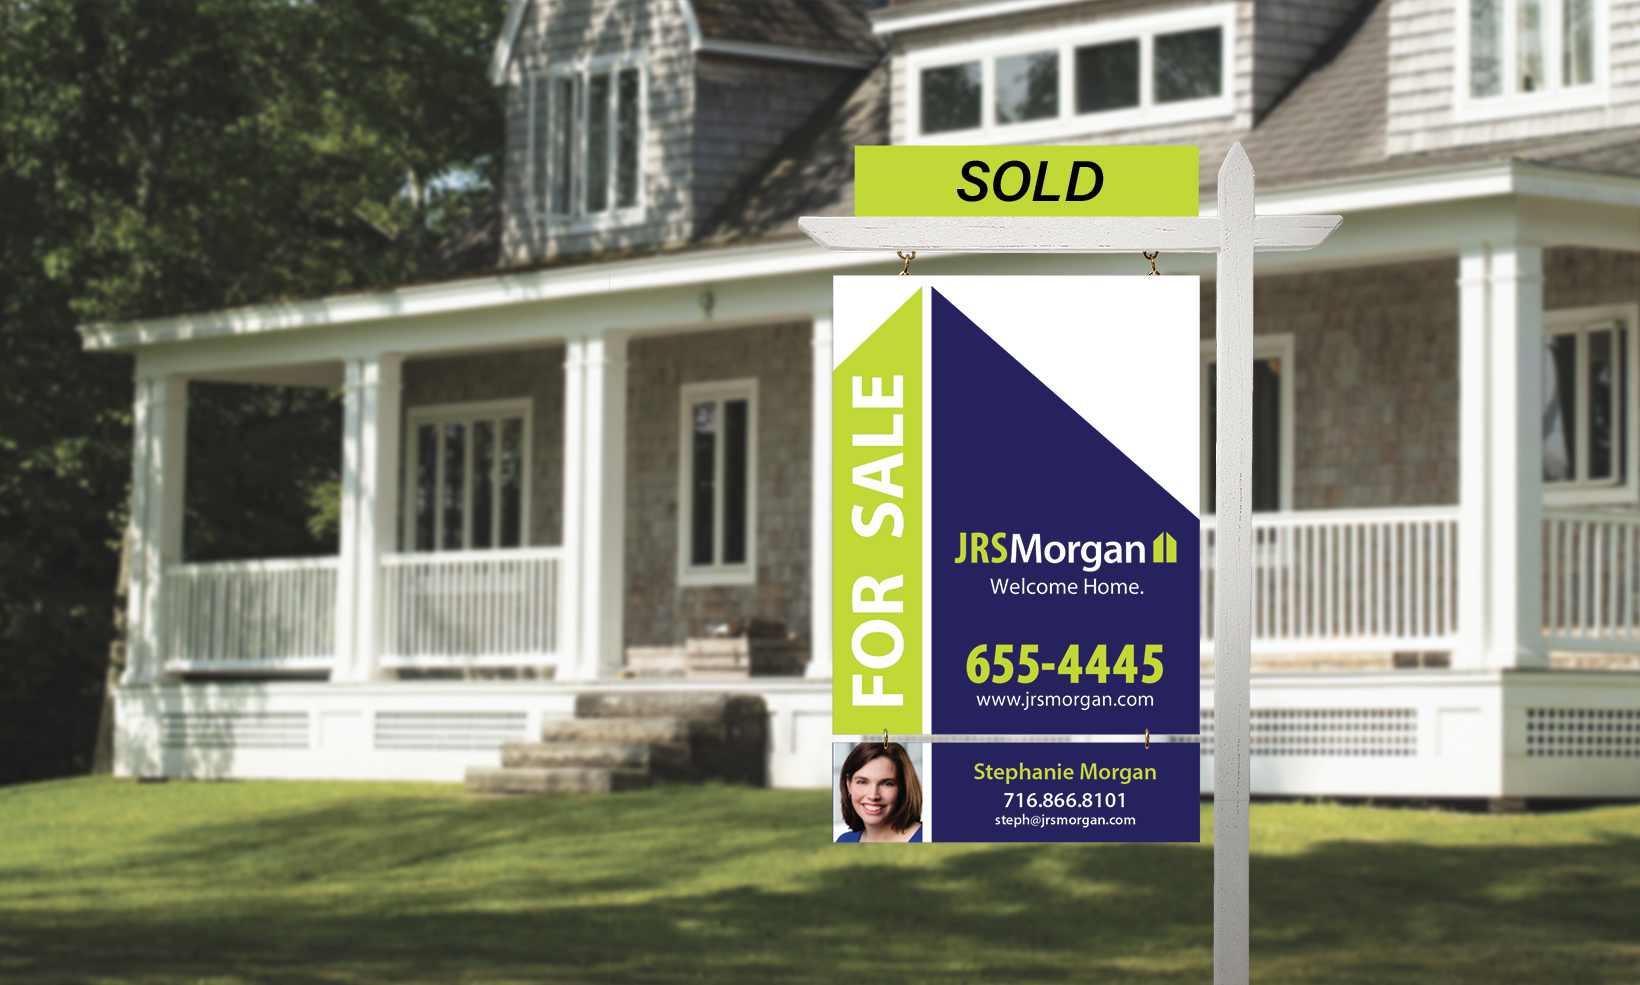 The JRS Morgan realty signs for use on front lawns use the firm's brand colors of indigo and green, and are designed to be customizable